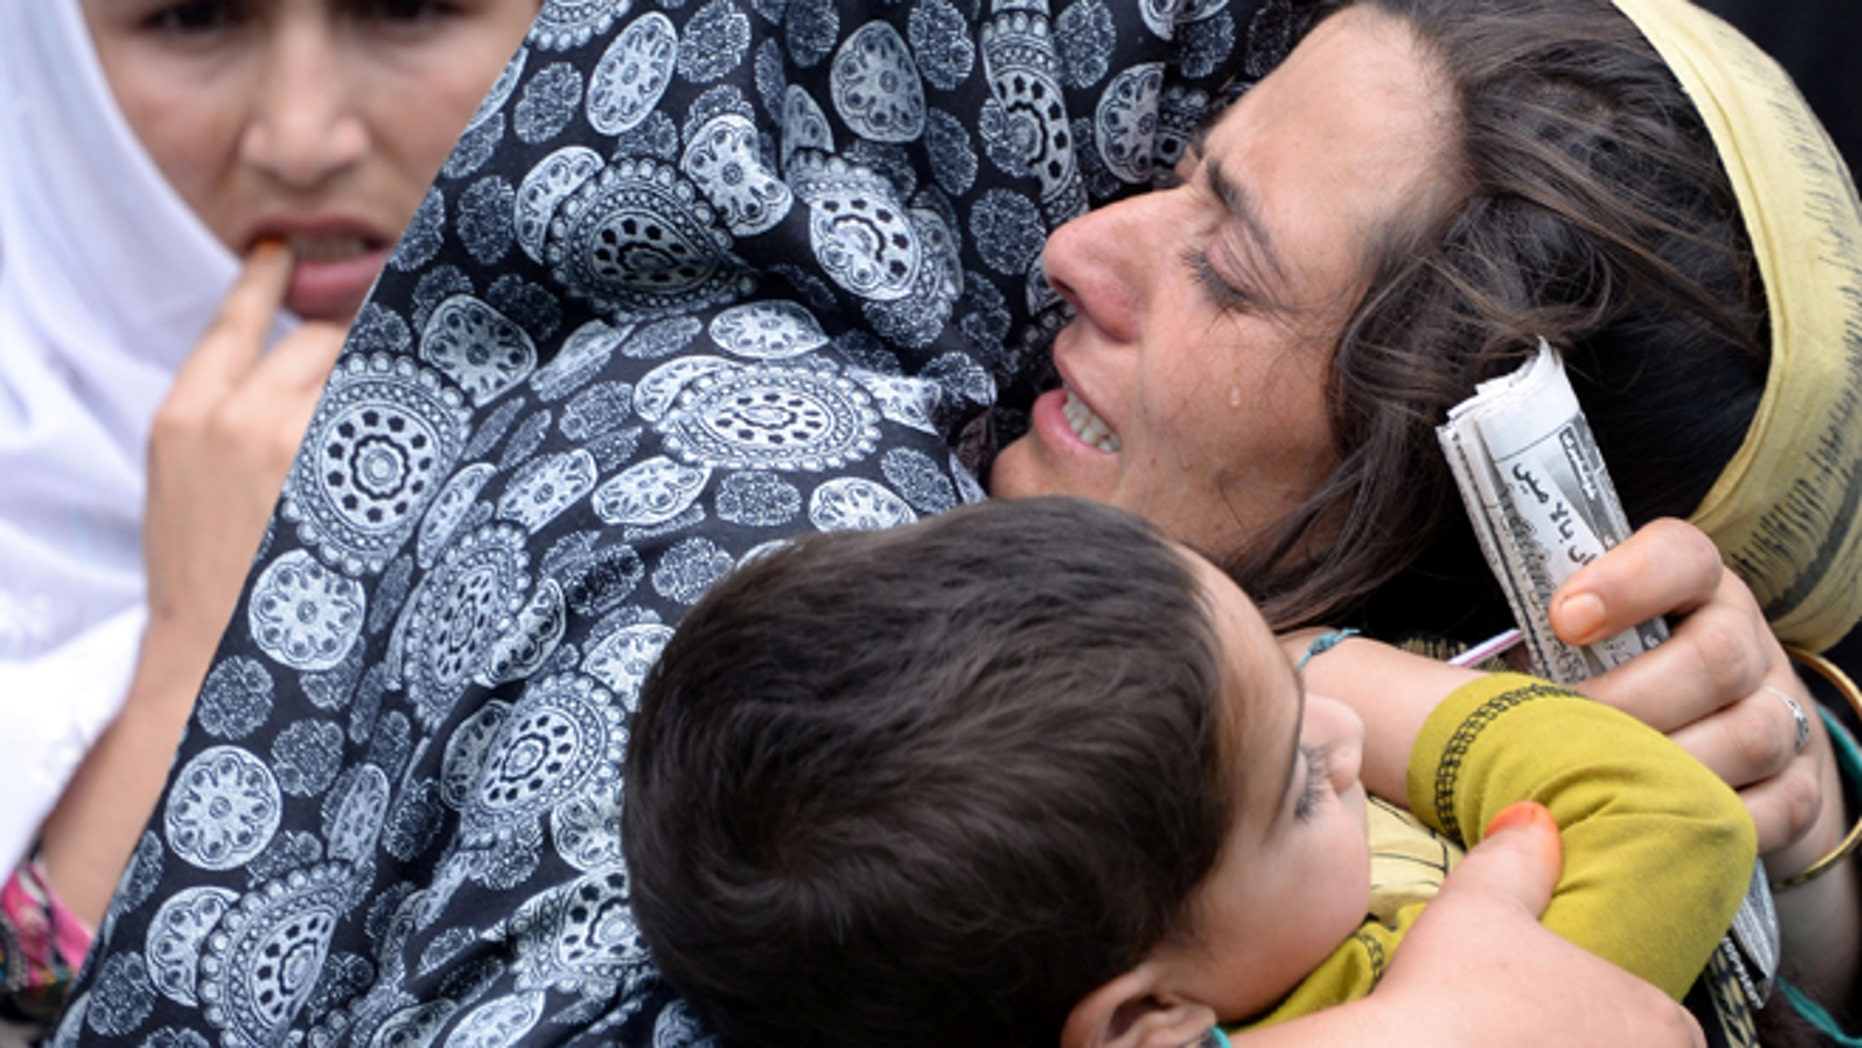 Aug. 5, 2015: Family members of Shafqat Hussain, who was convicted and hanged for killing a boy, mourn his death in Pakistani Kashmir.